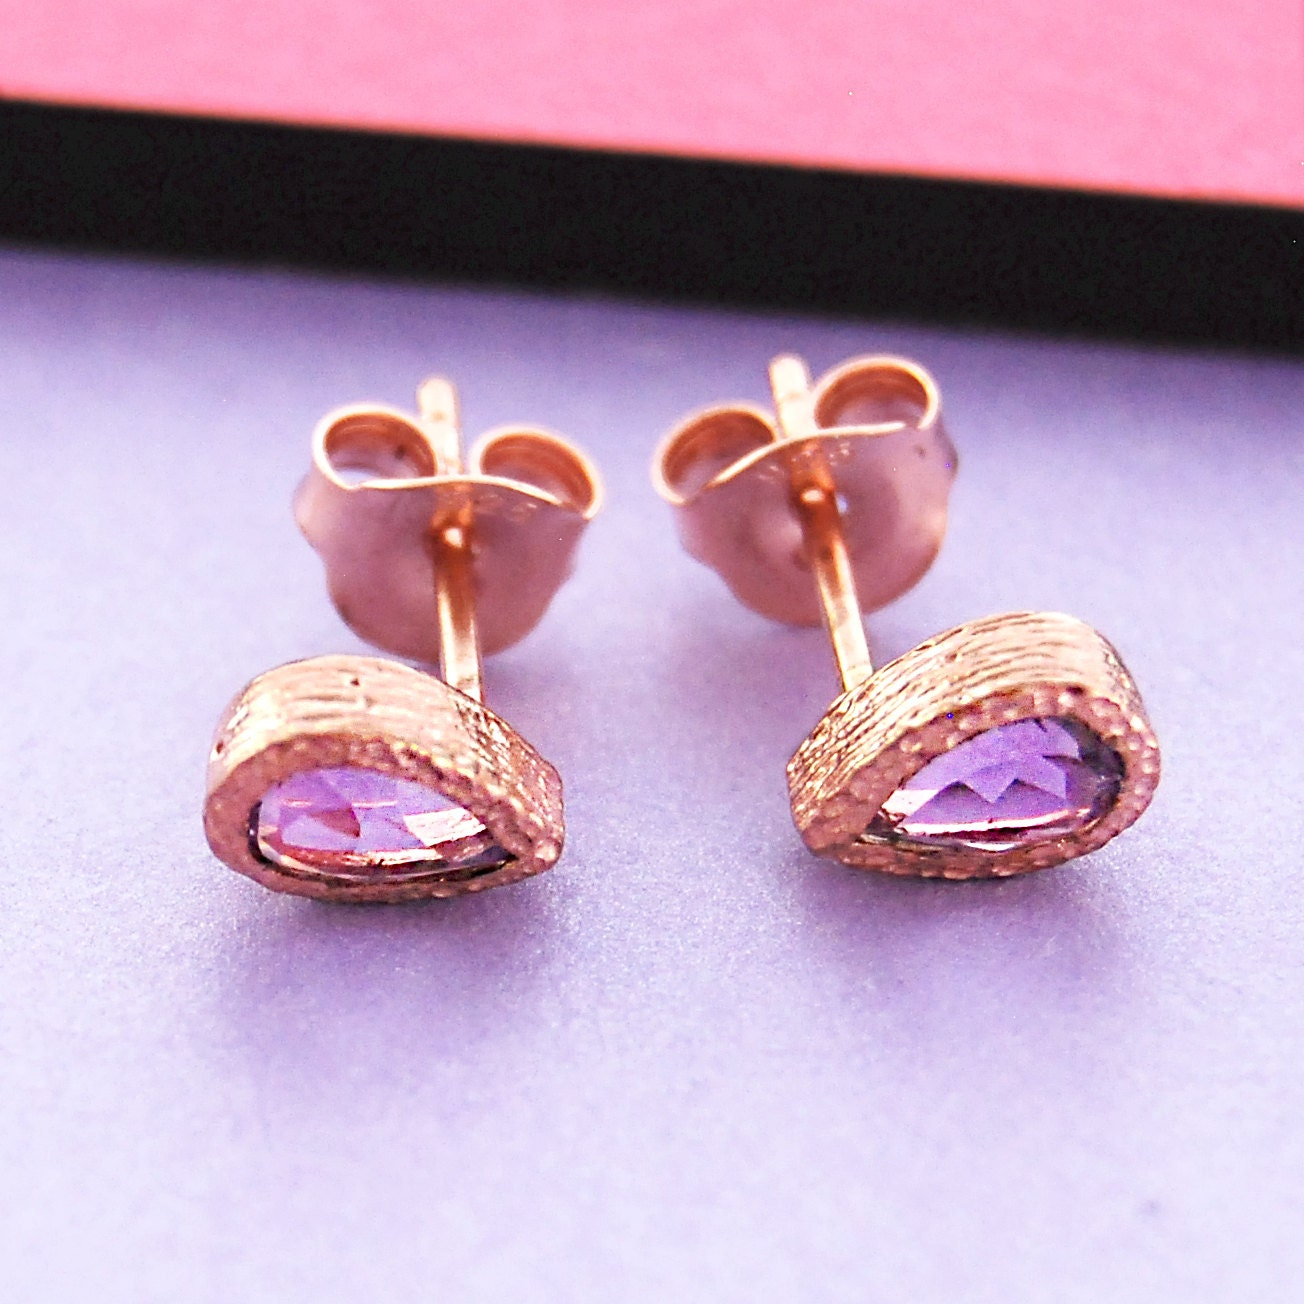 amethyst earrings rose gold studs tear drop stud earrings. Black Bedroom Furniture Sets. Home Design Ideas